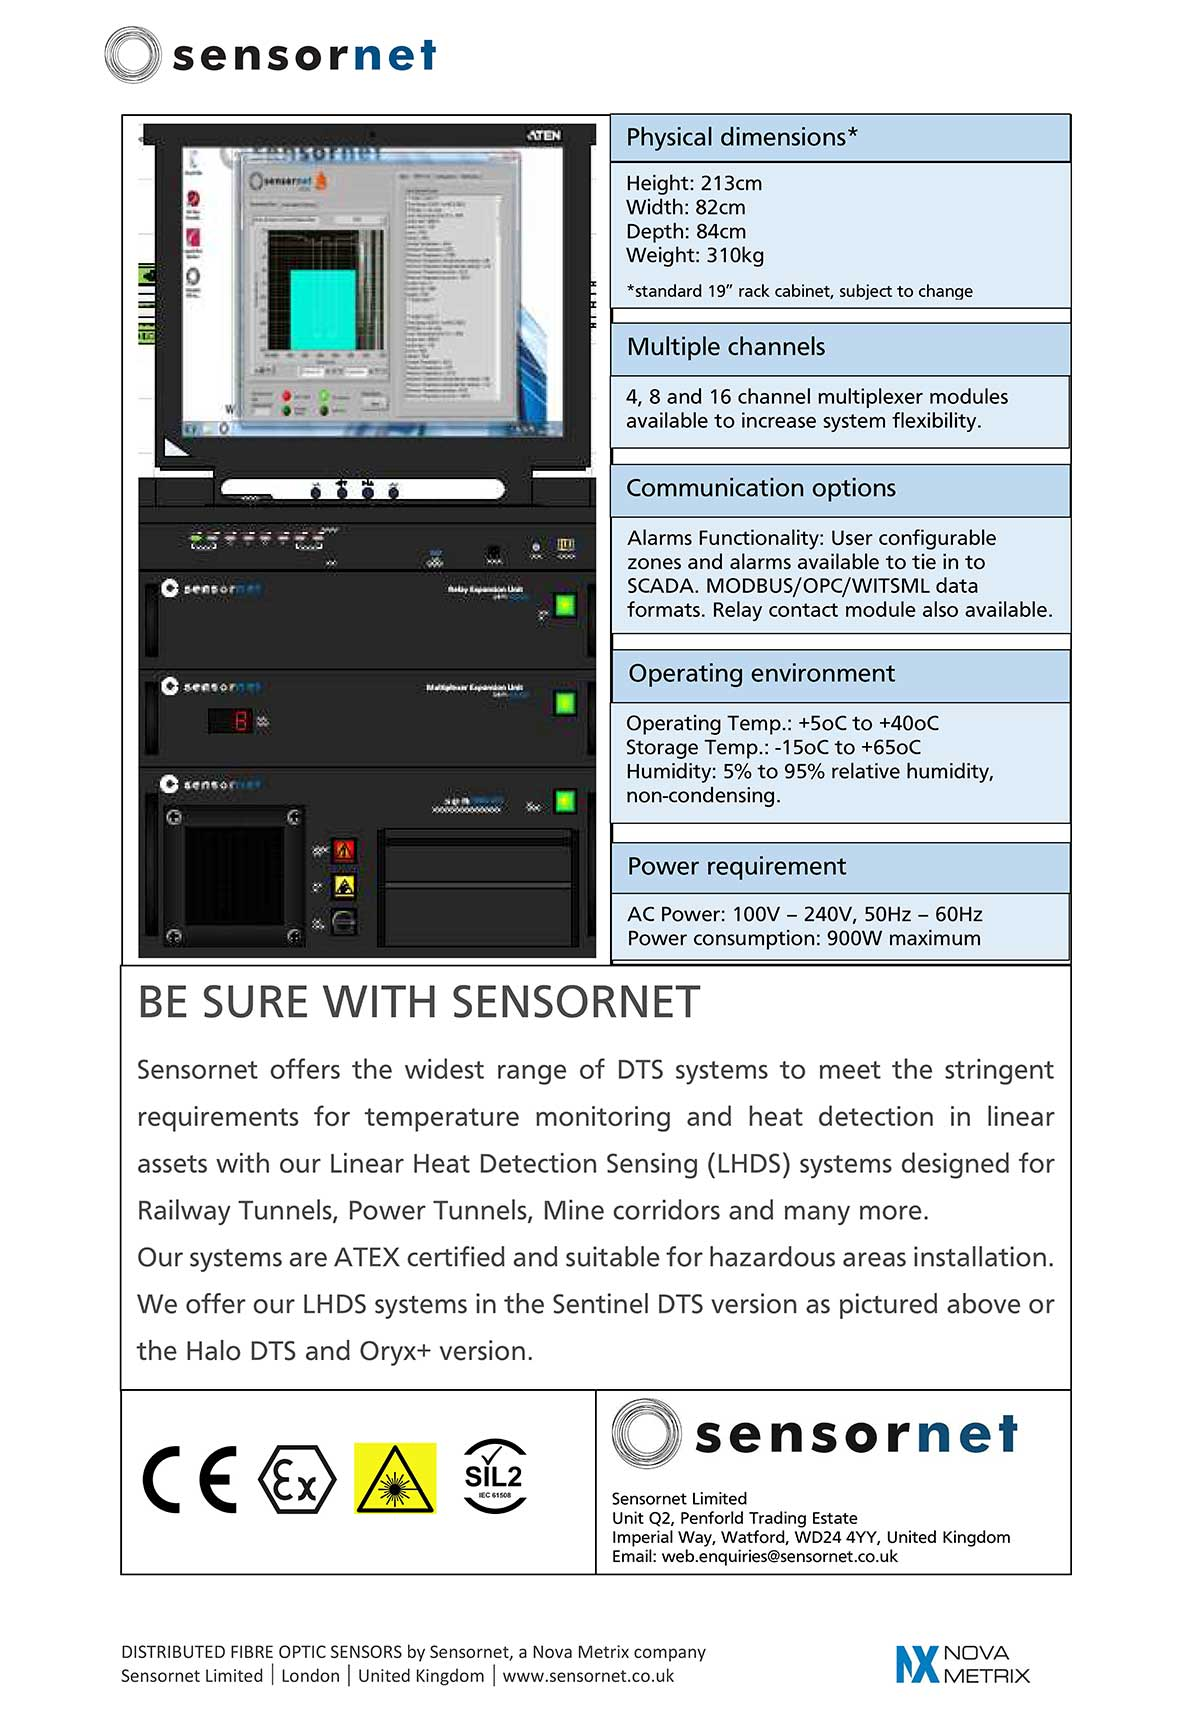 linear heat detection systems from sensornet